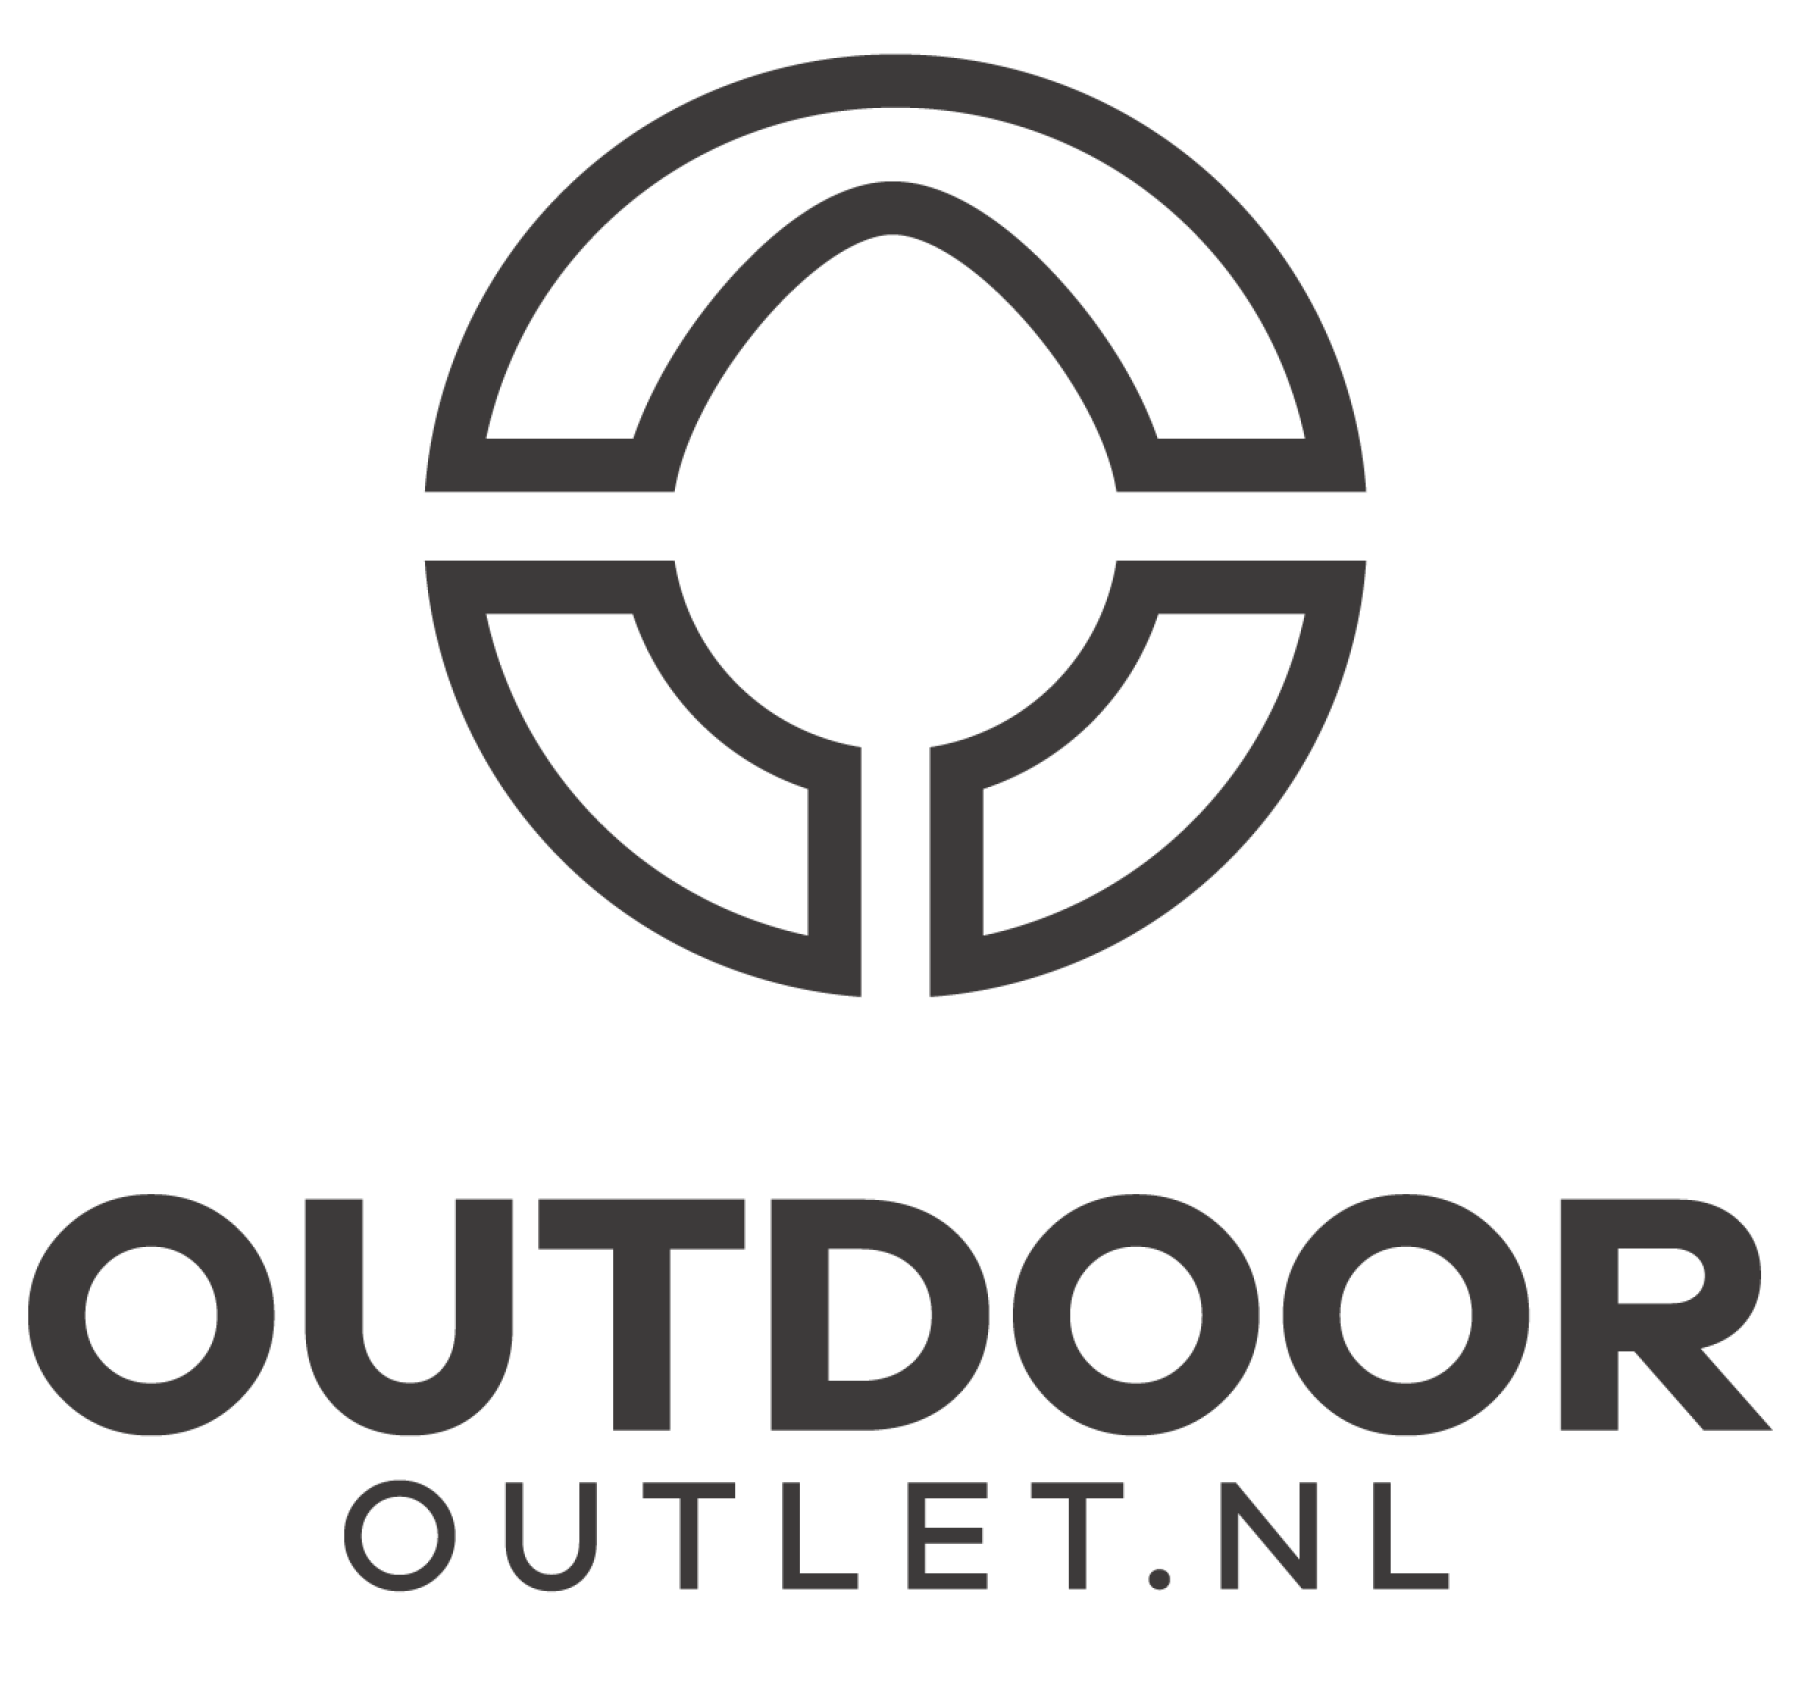 OutdoorOutlet.nl